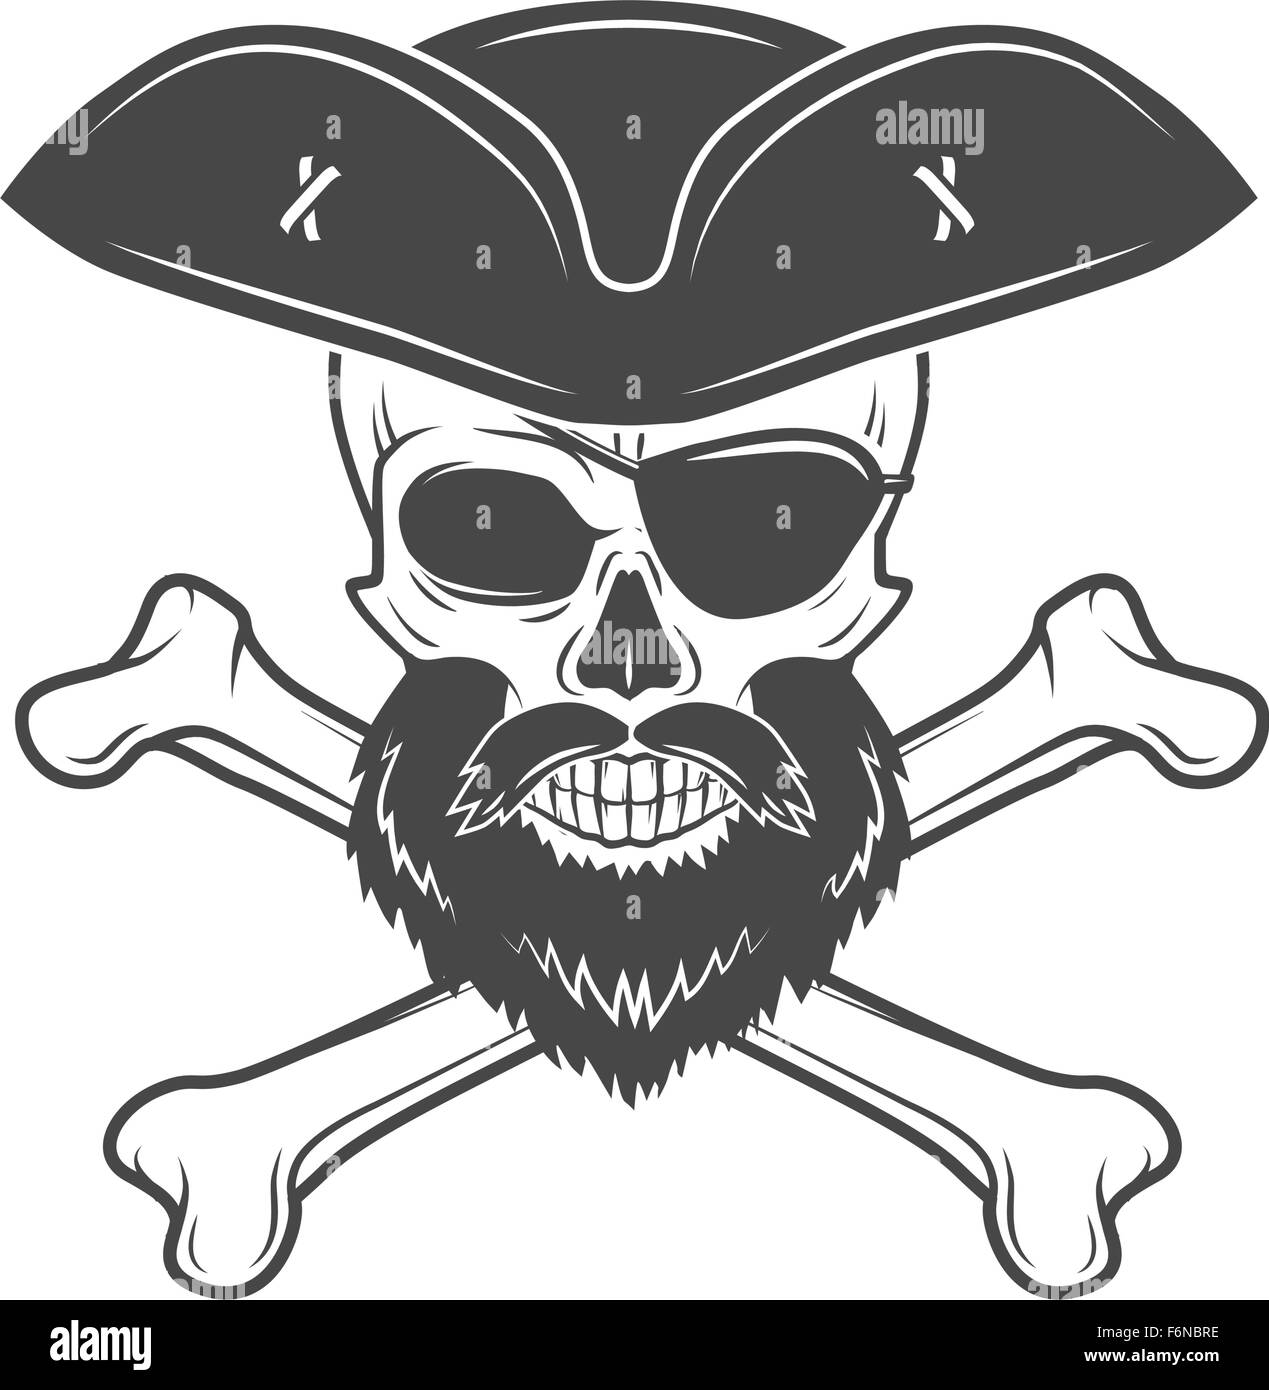 Pirate Skull In Cocked Hat With Beard Eye Patch And Crossed Bones Vector Edward Teach Portrait Corsair Logo Template Filibuster T Shirt Insignia Design